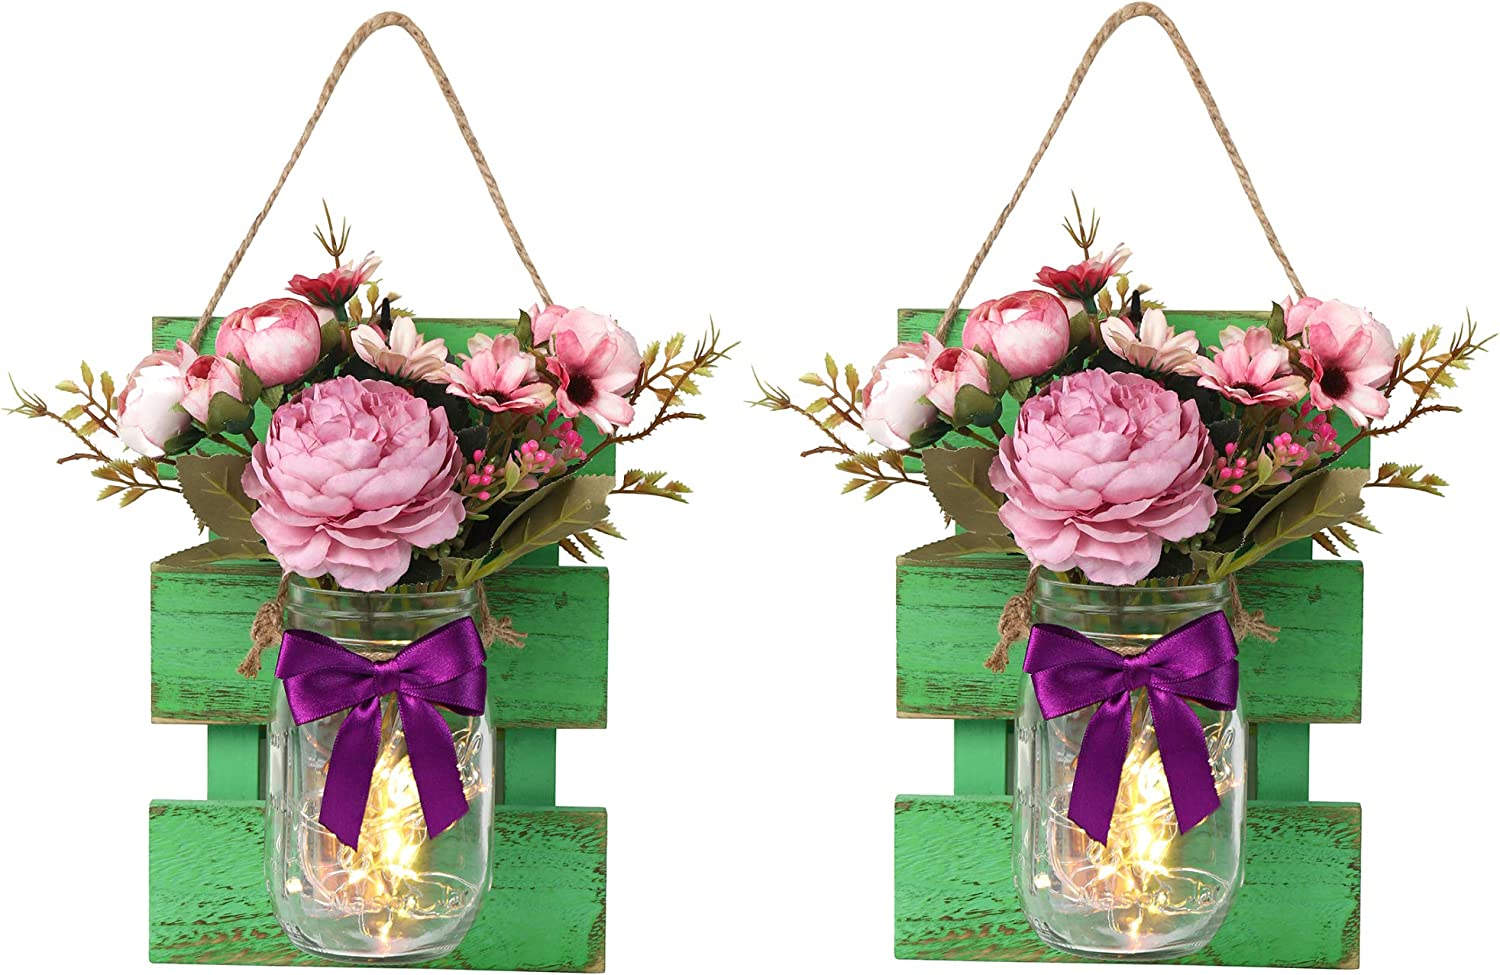 EmiLuces Collection Rustic Mason Jar 3D Wall Art Hanging Fairy LED Light Sconces with 6 Hour Timer, Pink Roses & Purple Camelia for Boho Farmhouse Kitchen Shabby Chic Decor (Set of 2)